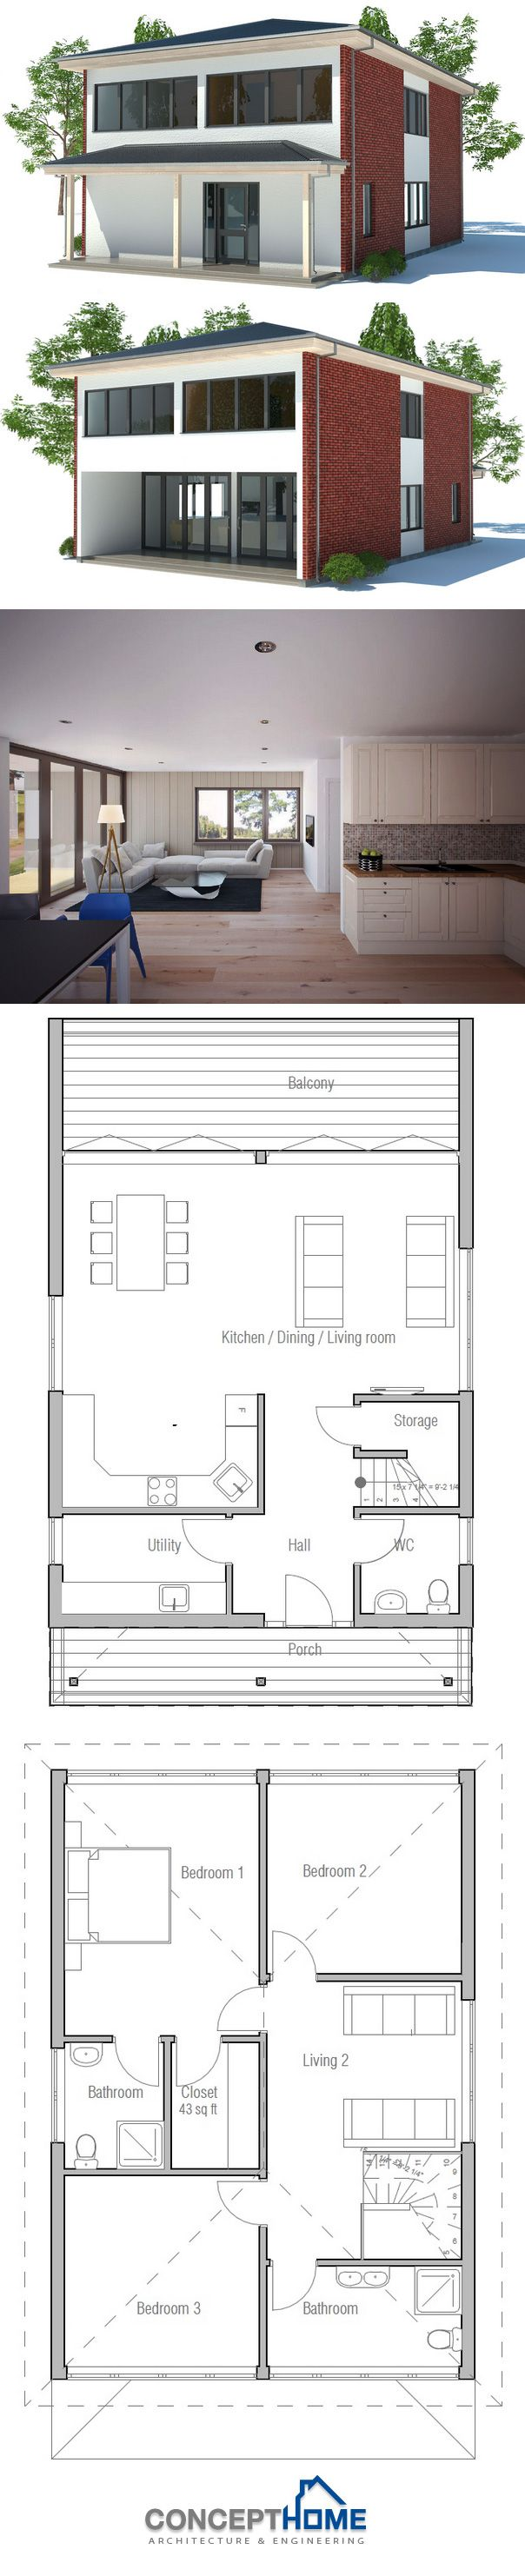 21 best narrow house images on pinterest architecture house